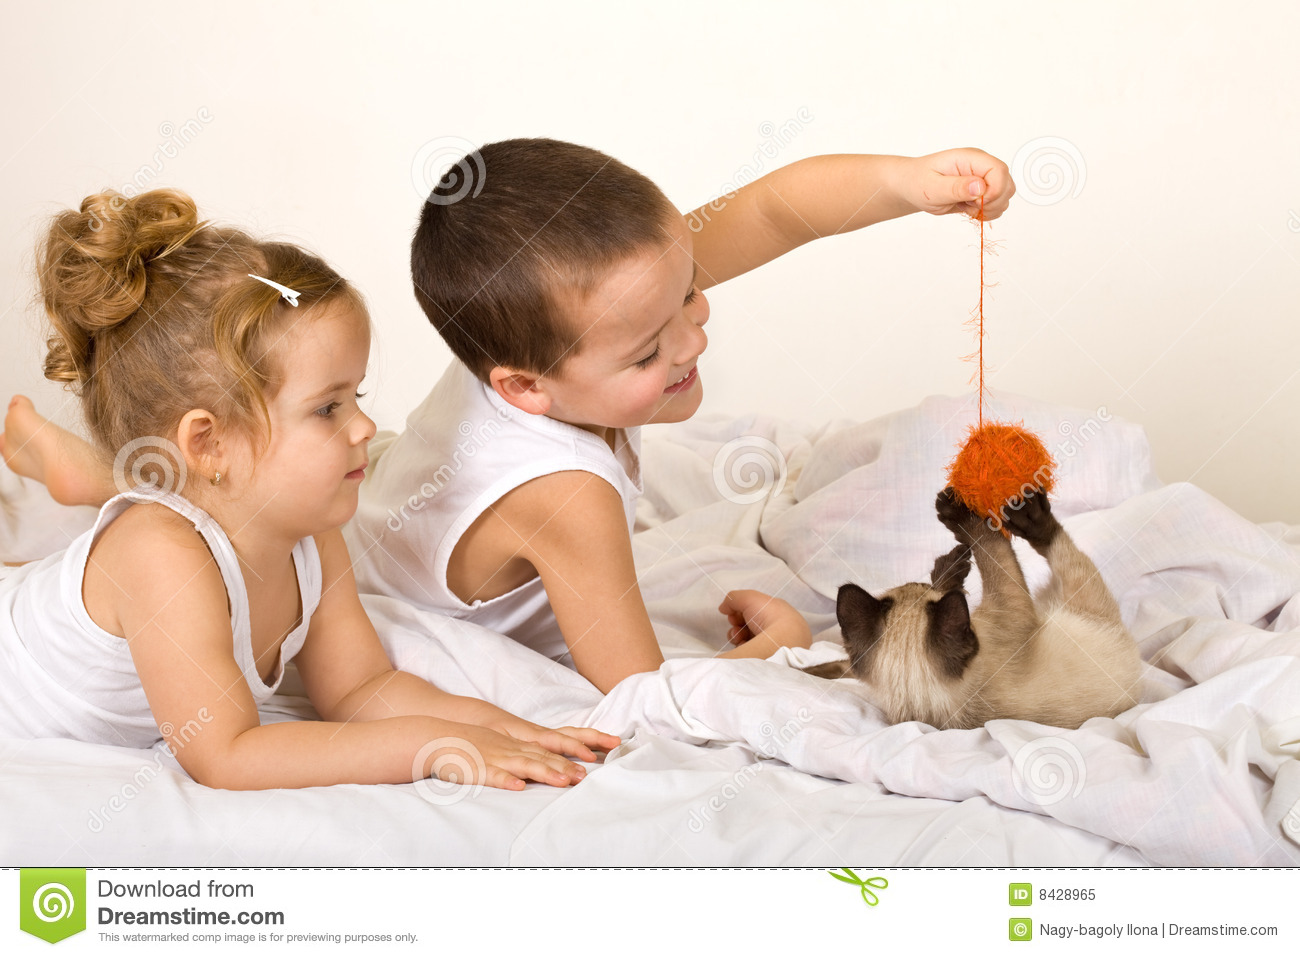 Kids playing with a kitten and a yarn ball